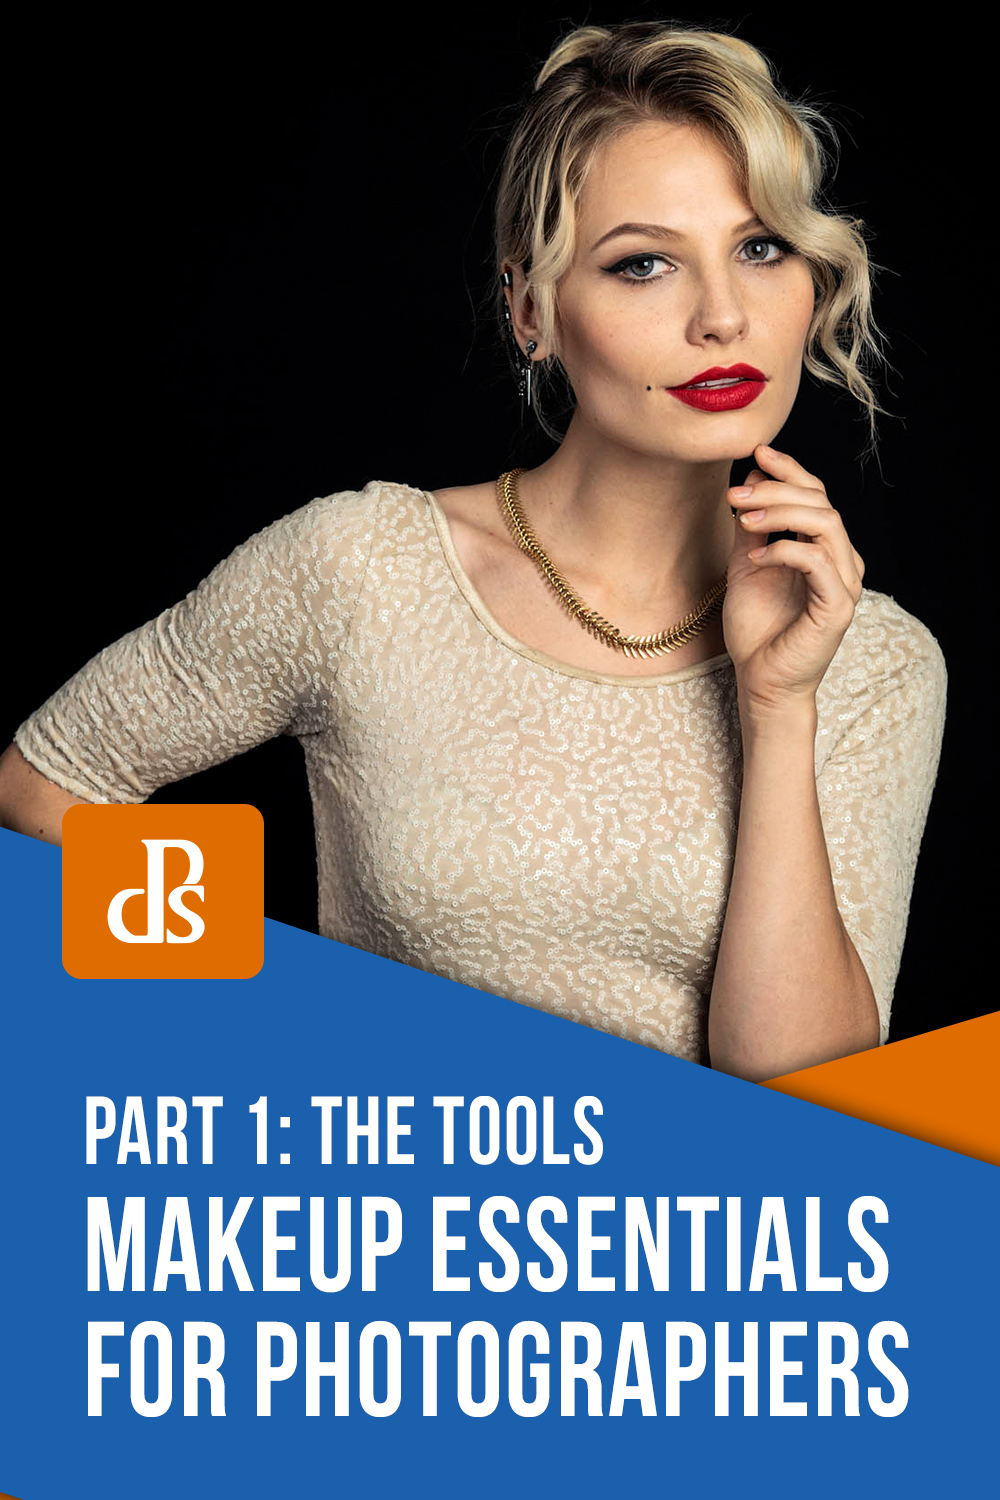 Makeup Essentials for Photographers Part I - The Tools